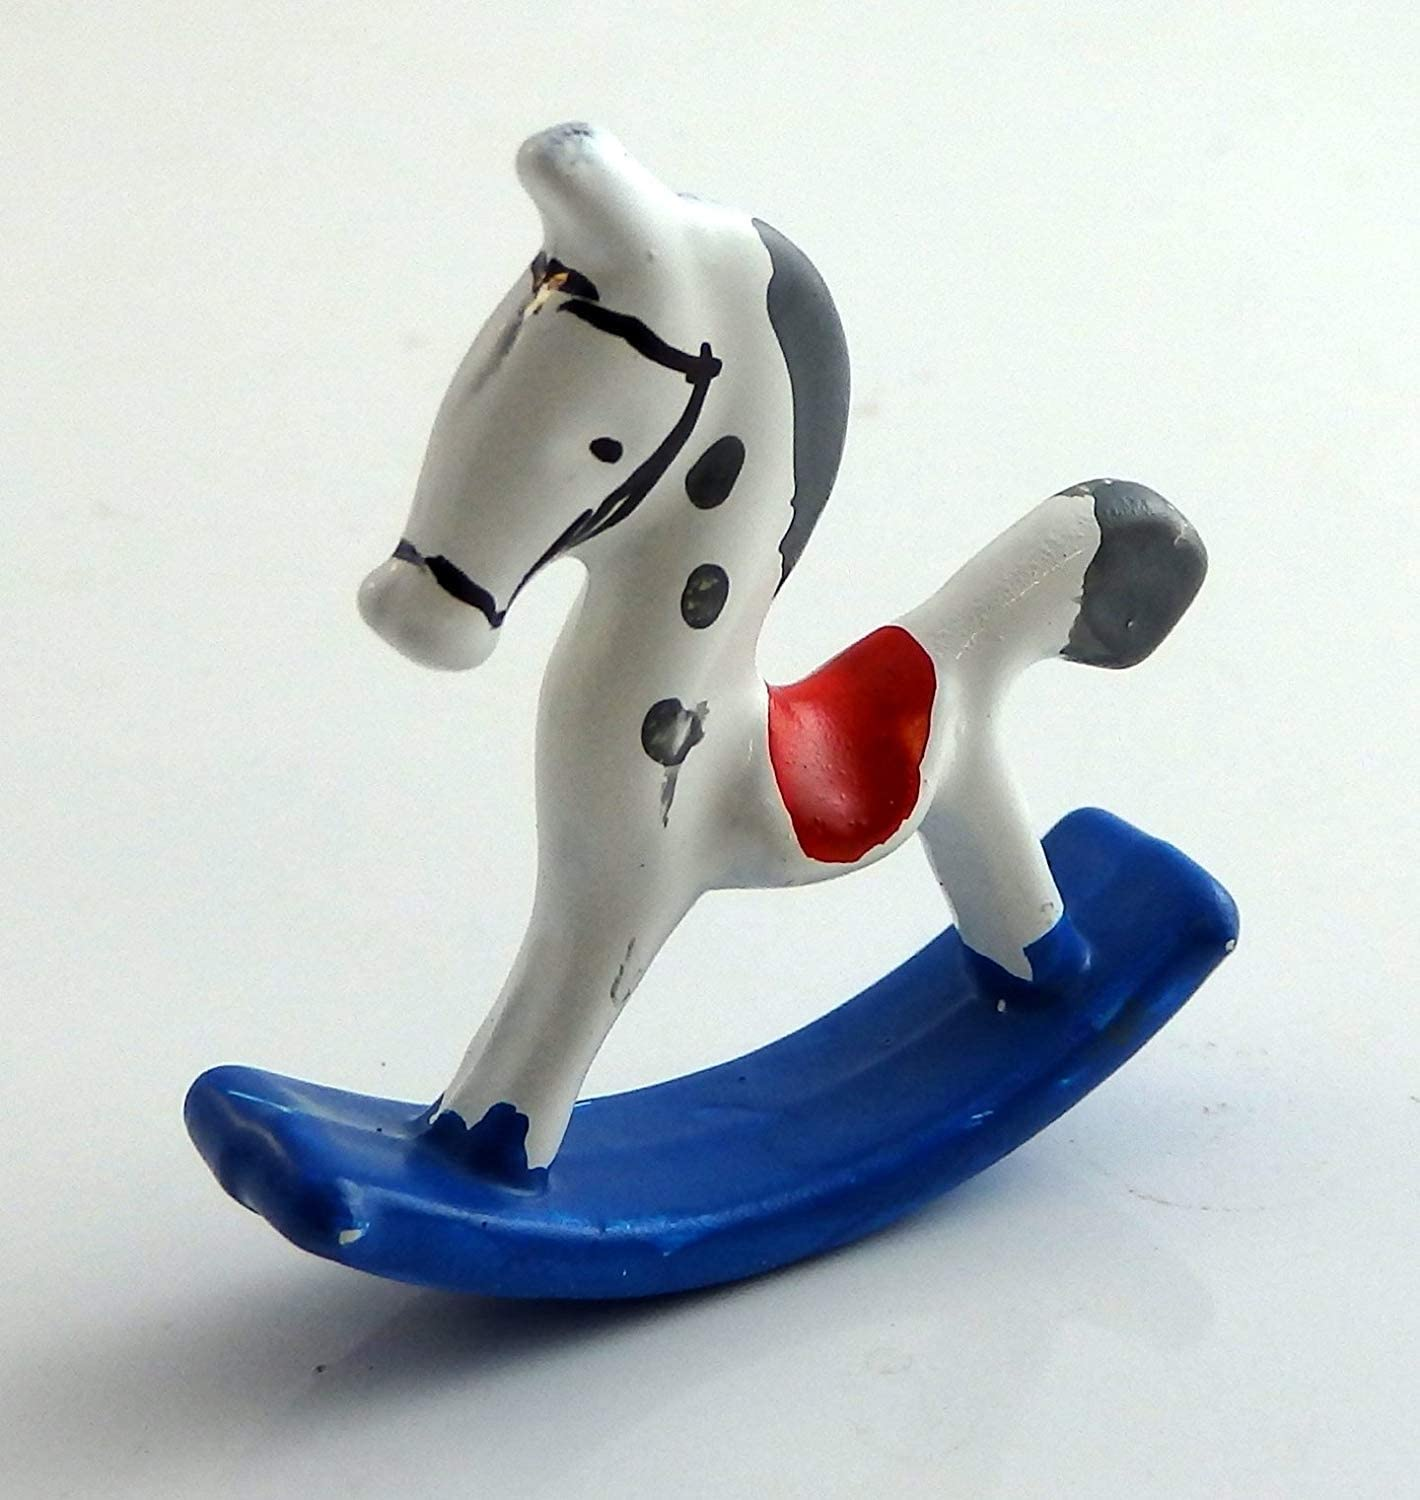 Melody Jane Dolls Houses House Miniature Nursery Toy Shop Accessory 1:12 Small Metal Rocking Horse